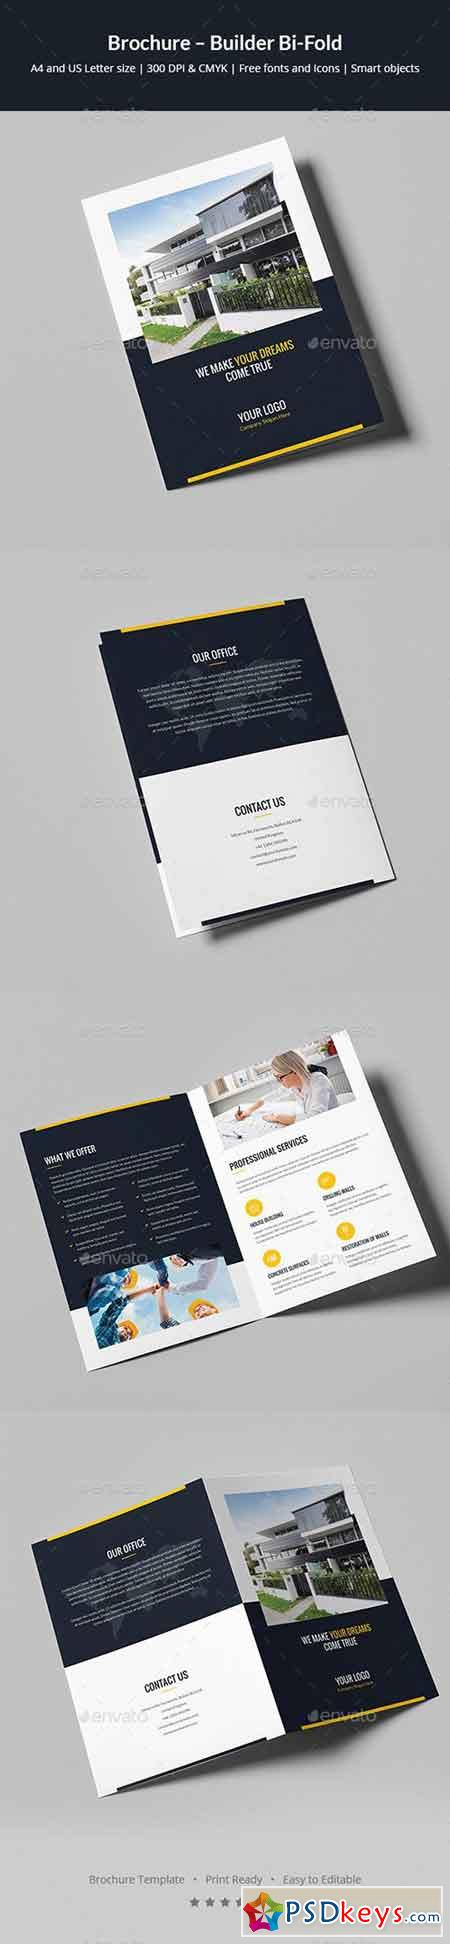 Brochures page 4 free download photoshop vector stock for Bi fold brochure template indesign